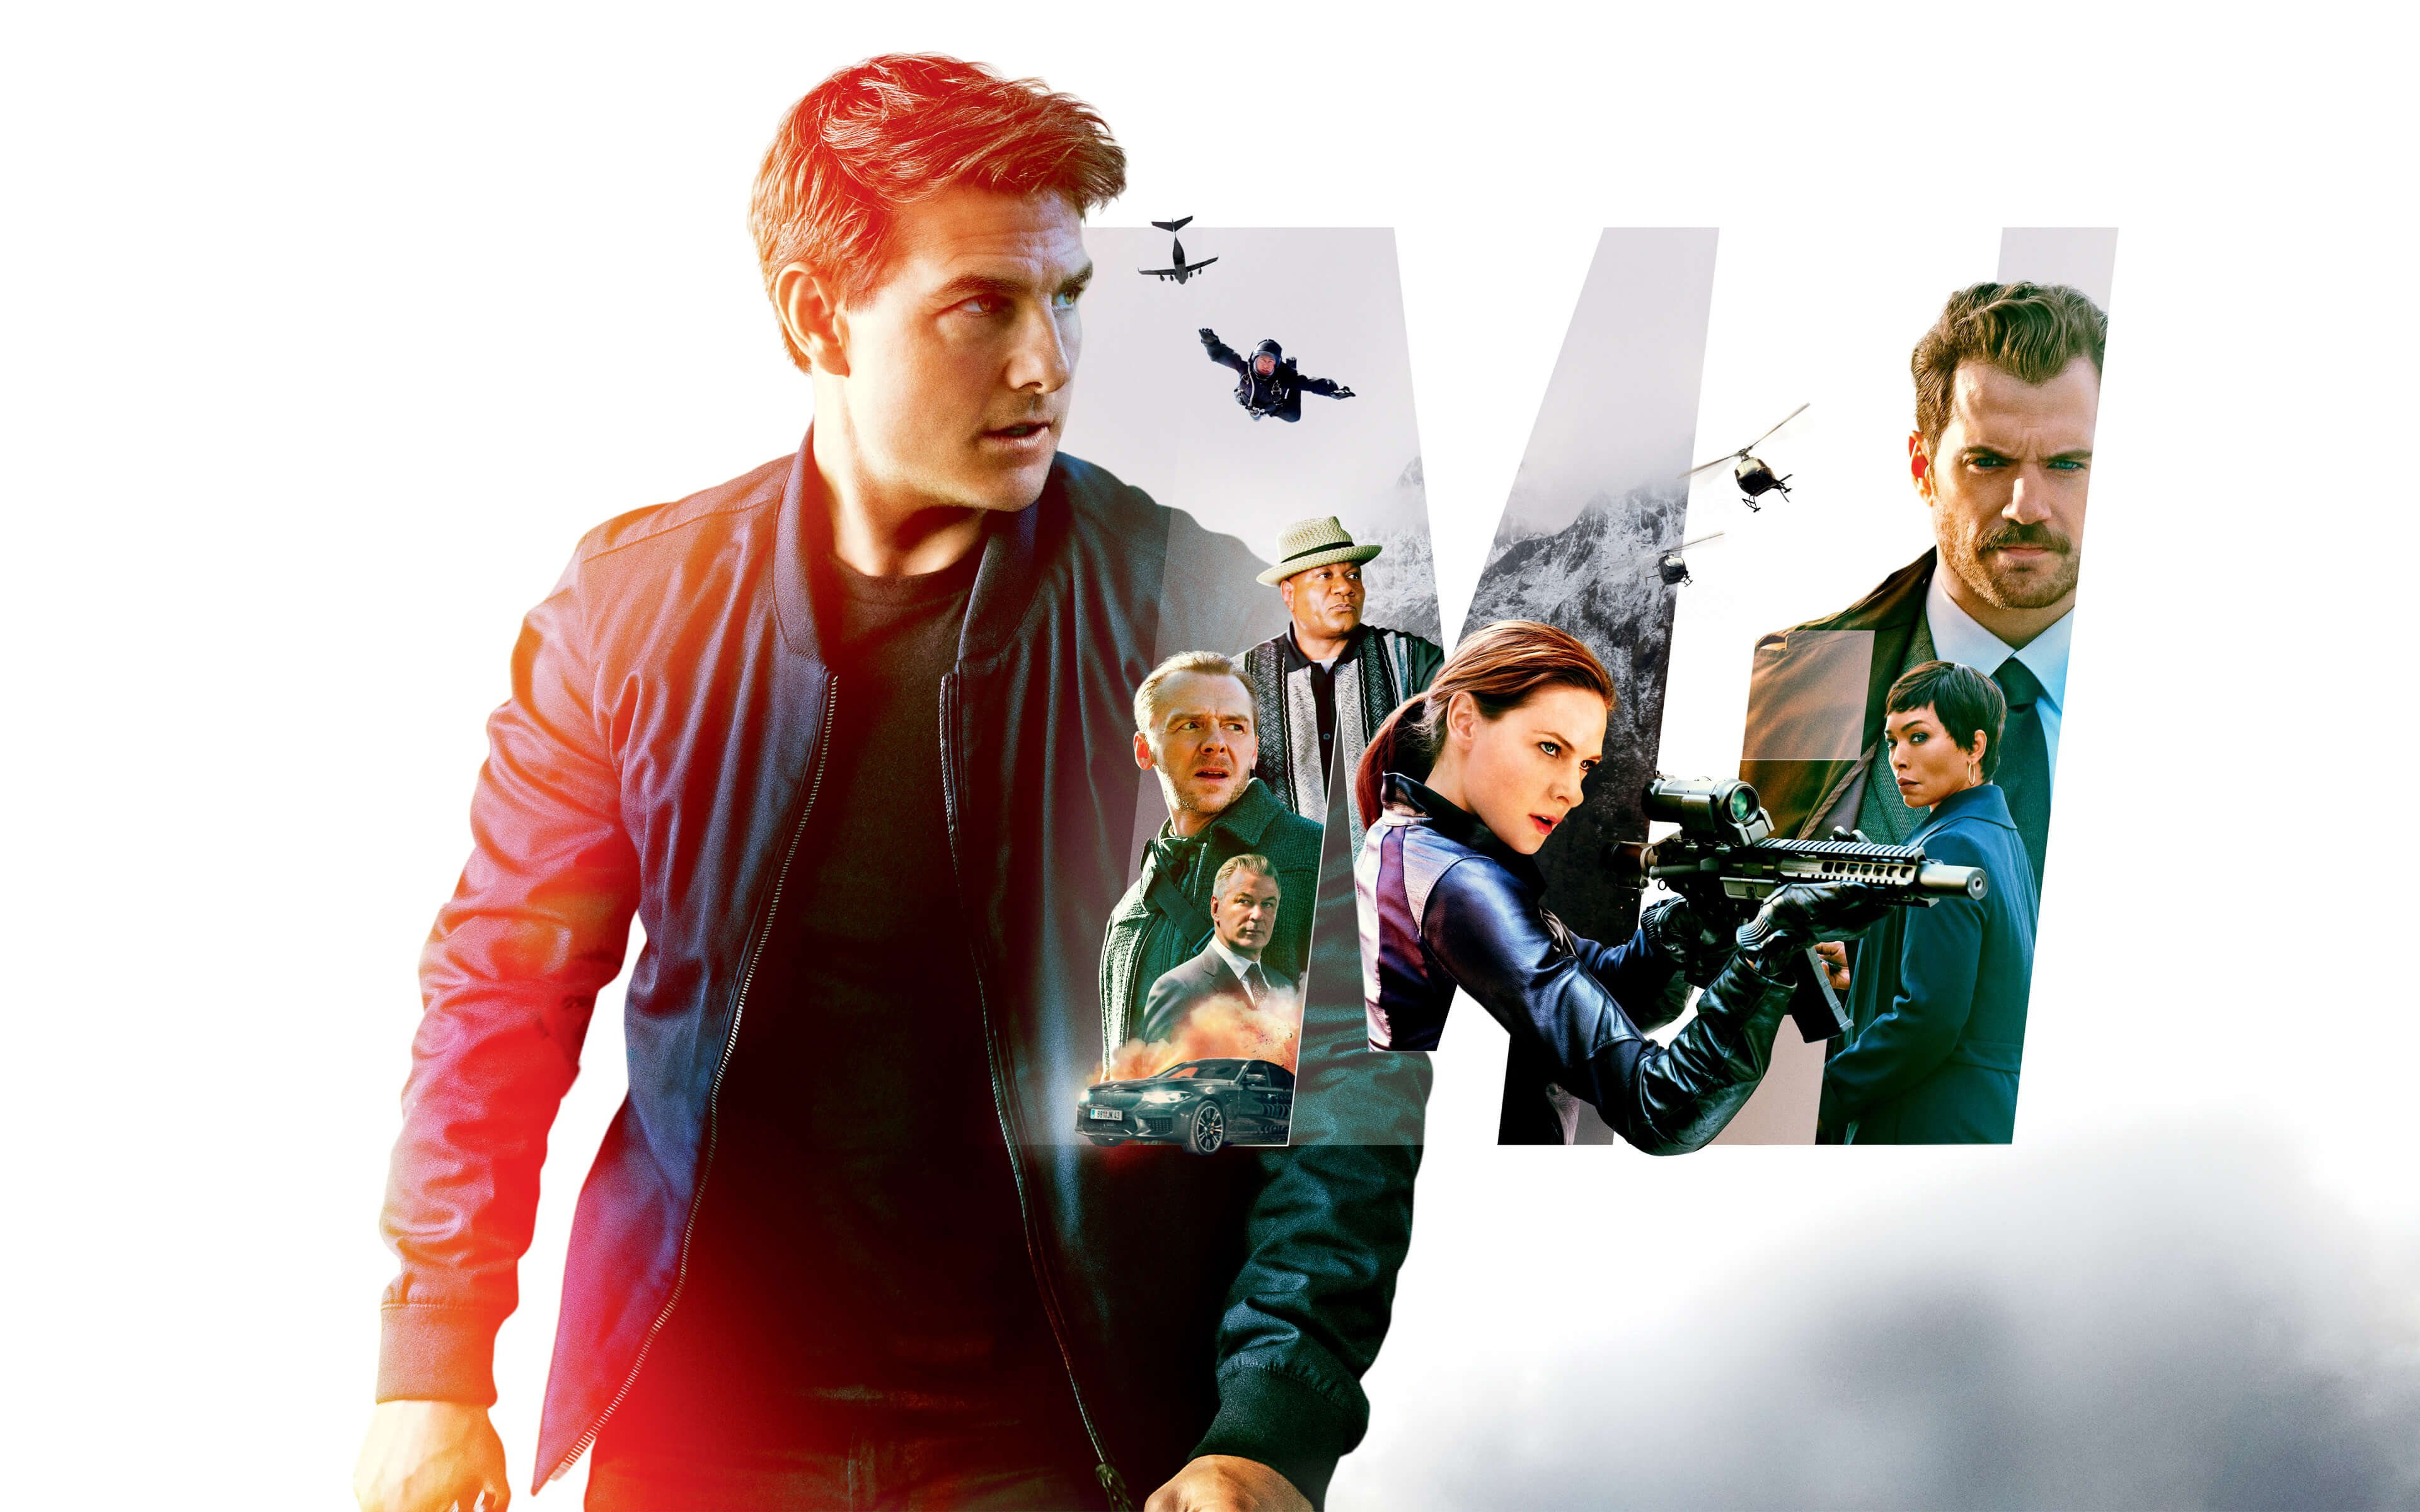 Mission: Impossible 6 - Fallout anmeldelse